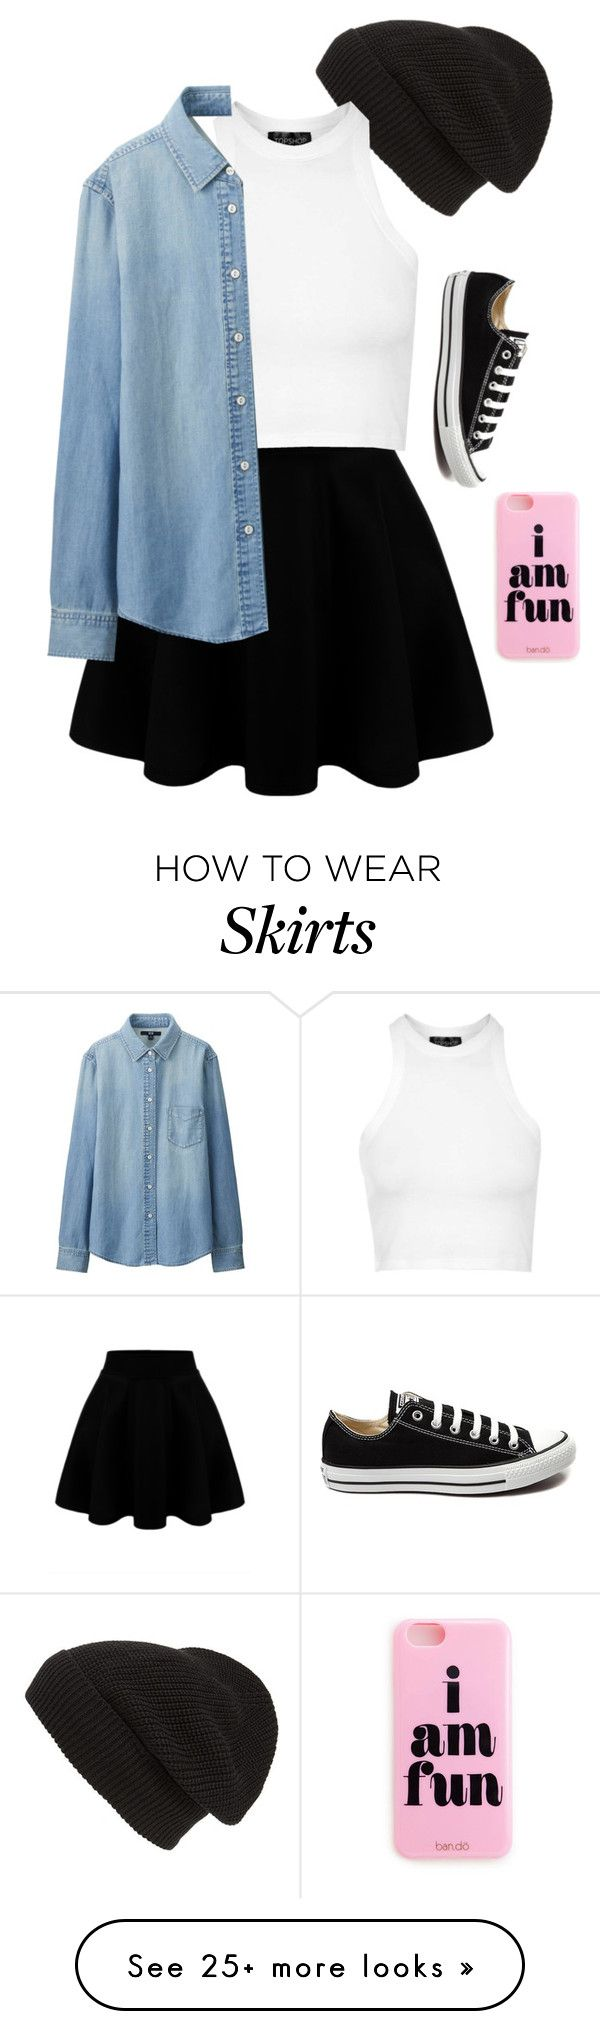 """Forced to wear a skirt"" by blondeblogger23 on Polyvore featuring Phase 3, Topshop, Uniqlo, Converse, women's clothing, women, female, woman, misses and juniors"